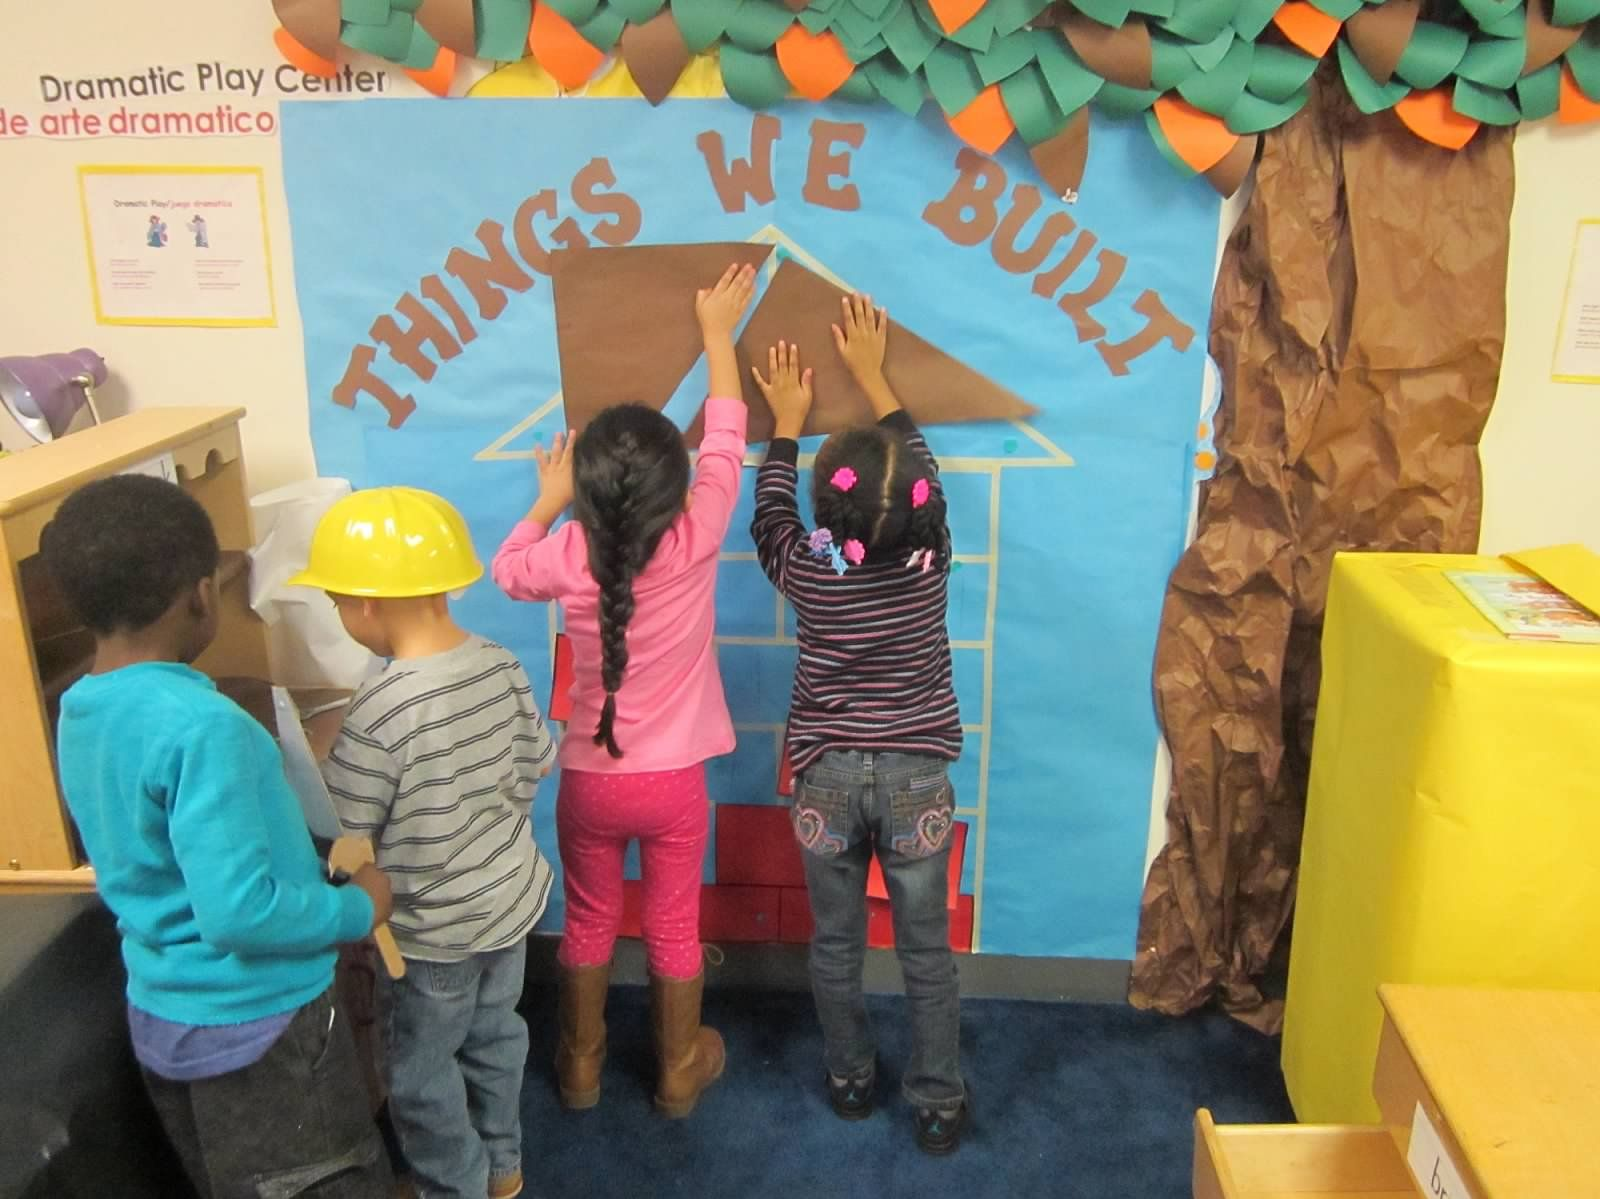 Dramatic Play Things We Build I Made A Blueprint Of A